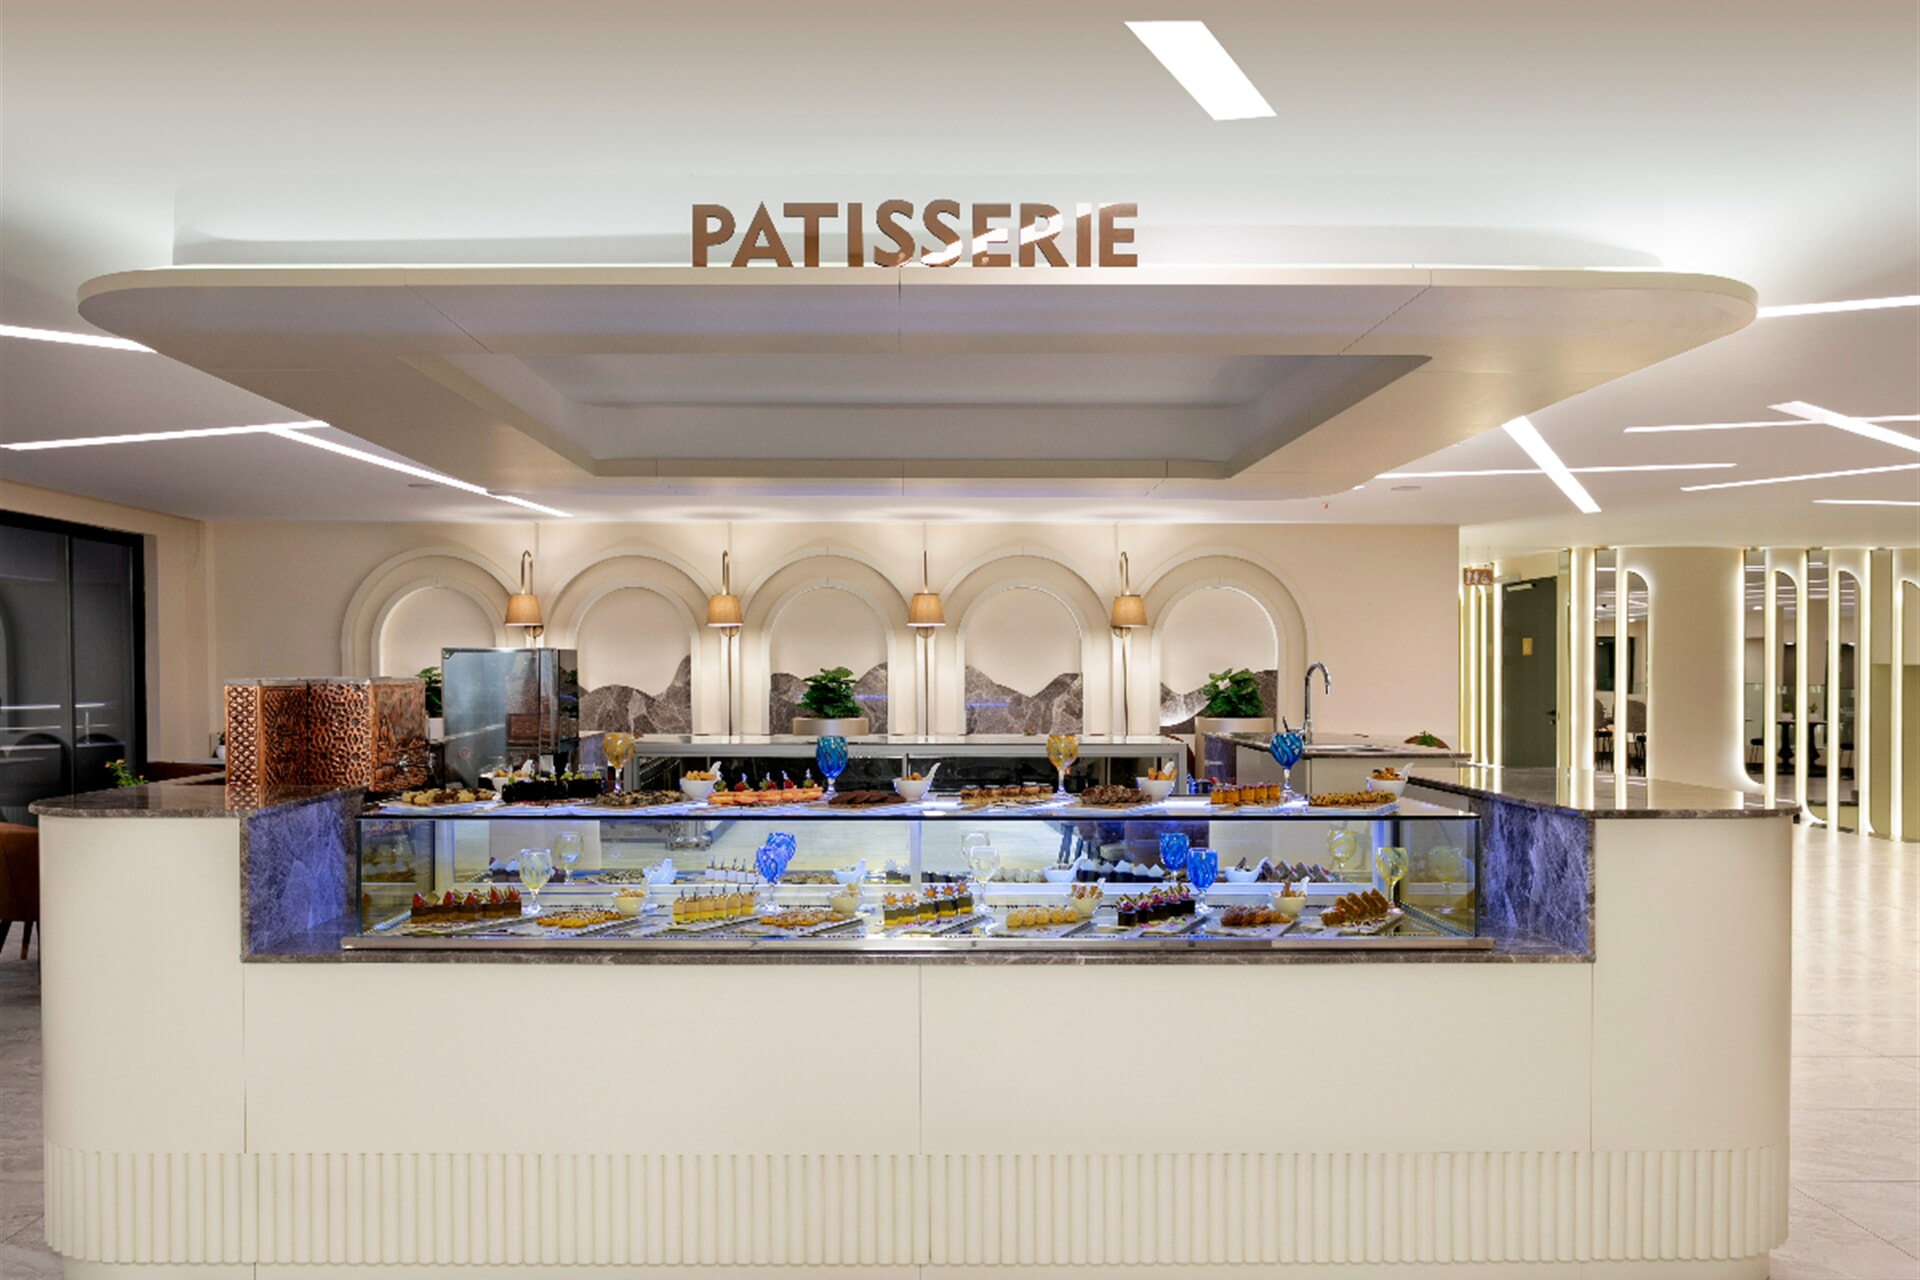 Would you like to try the cakes and desserts that our chefs make?